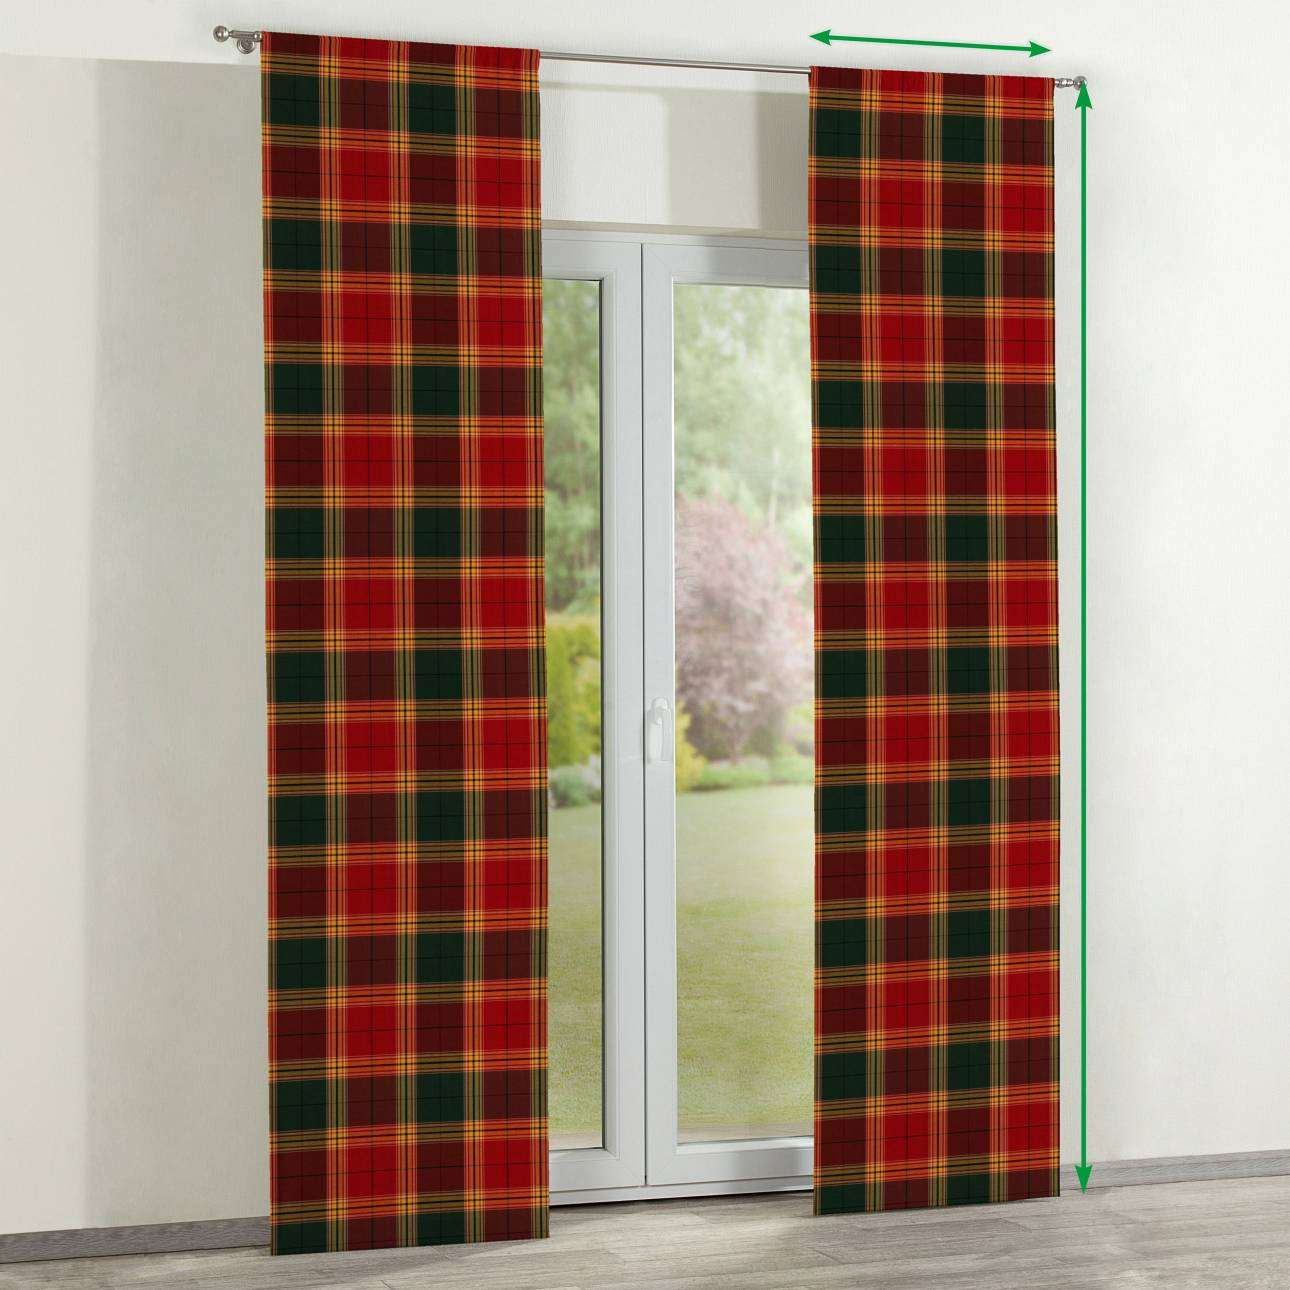 Slot panel curtains – Set of 2 in collection Bristol, fabric: 125-48